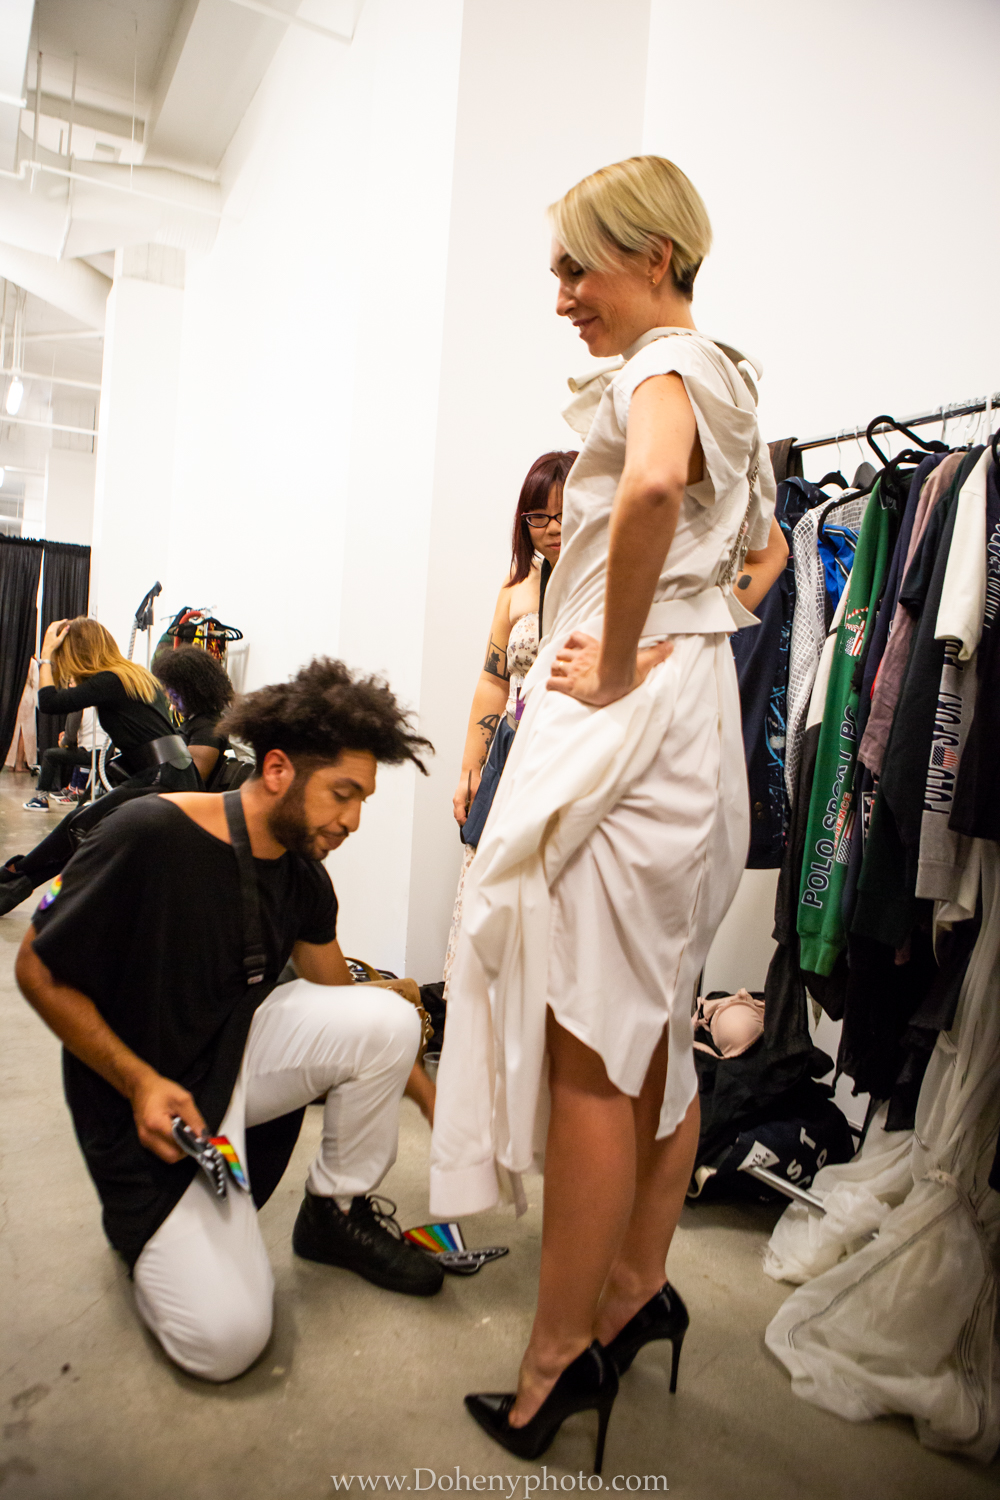 bohemian_society_LA_Fashion_week_Dohenyphoto-3730.jpg